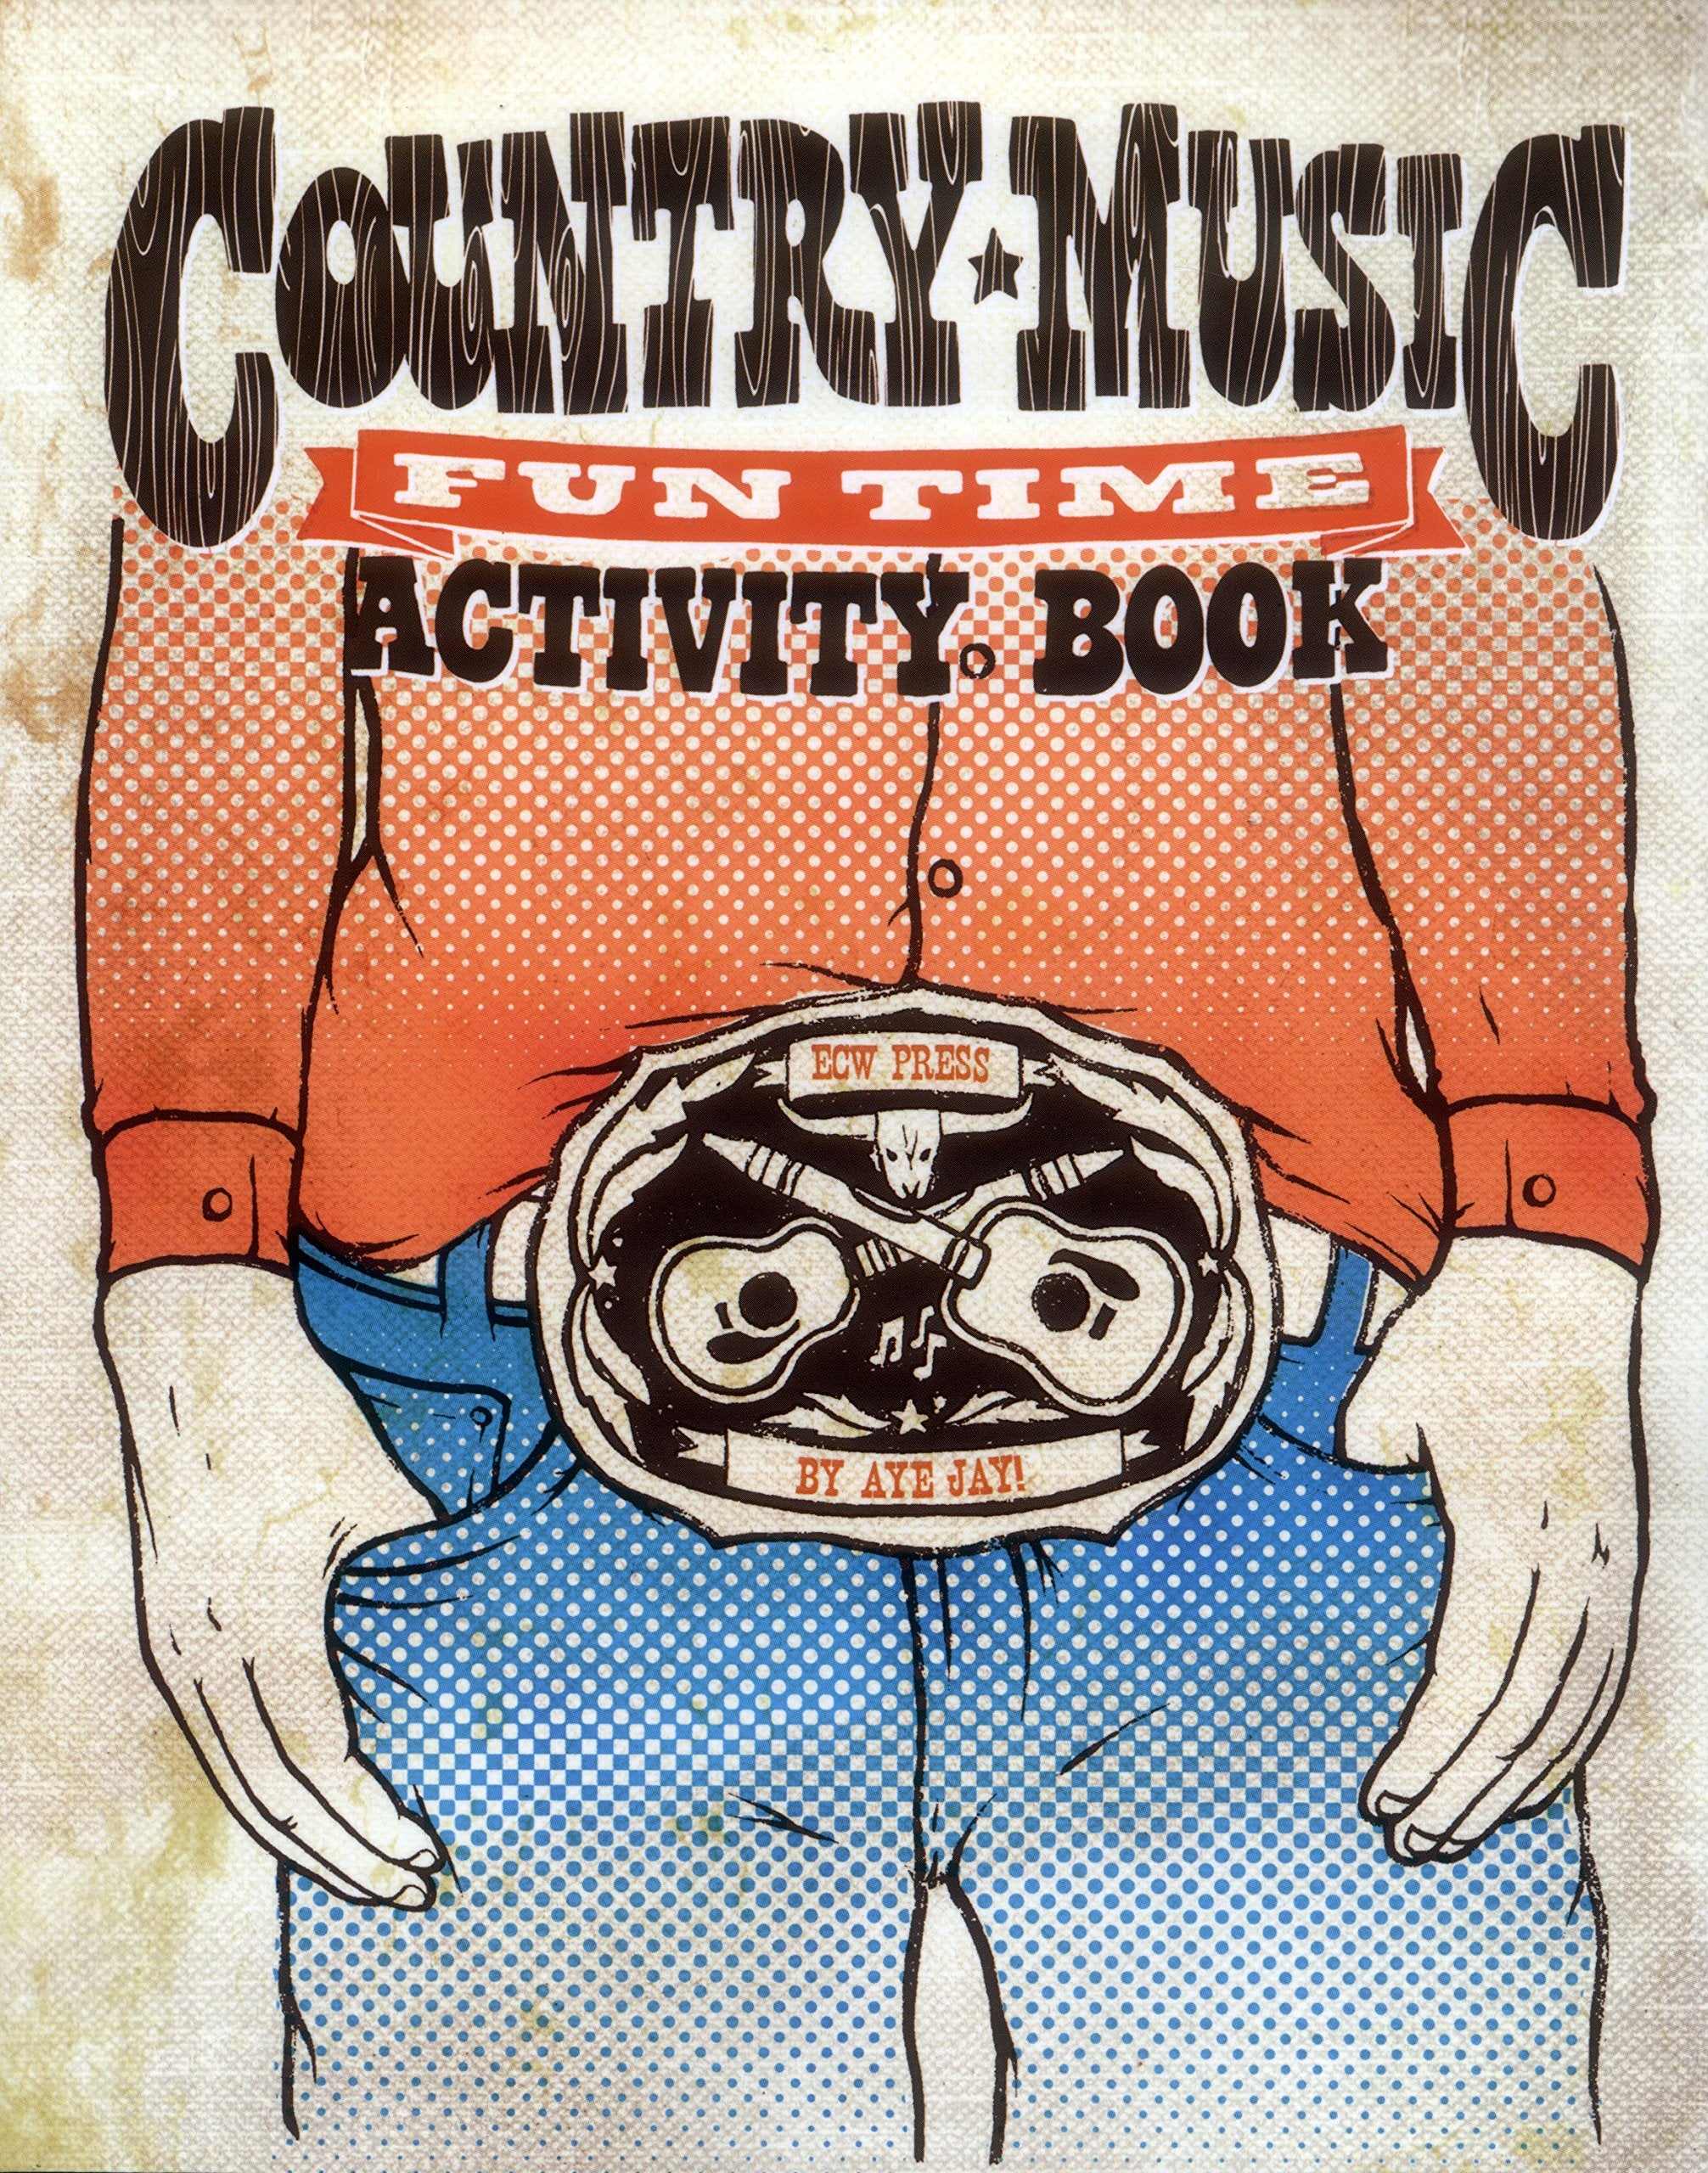 Country Music Fun Time Activity Book -  - Midnight Rider